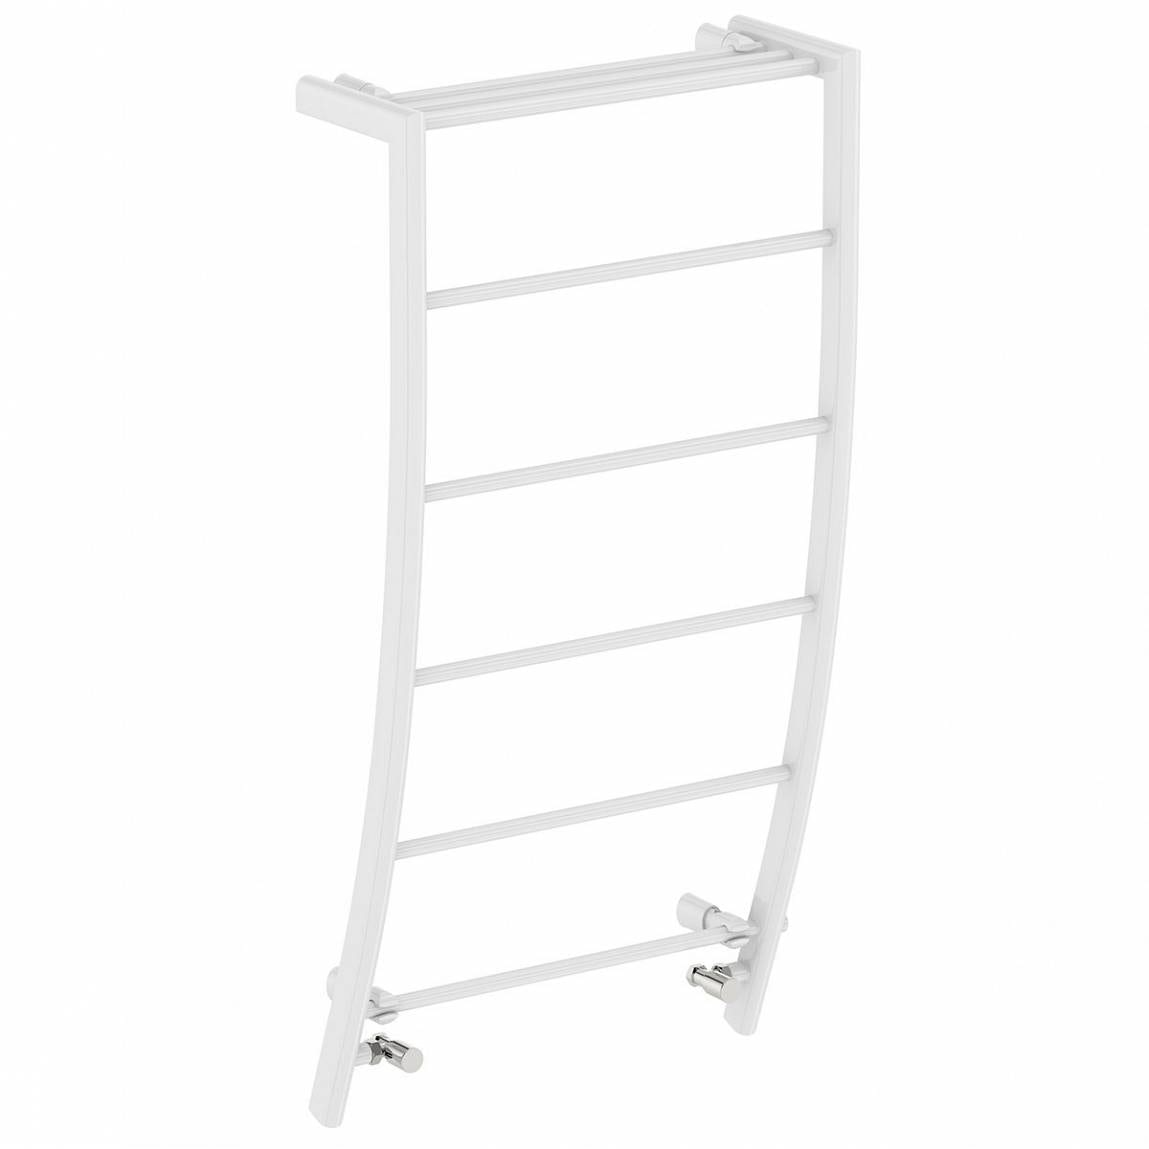 Orchard White curved heated towel rail 1200 x 600